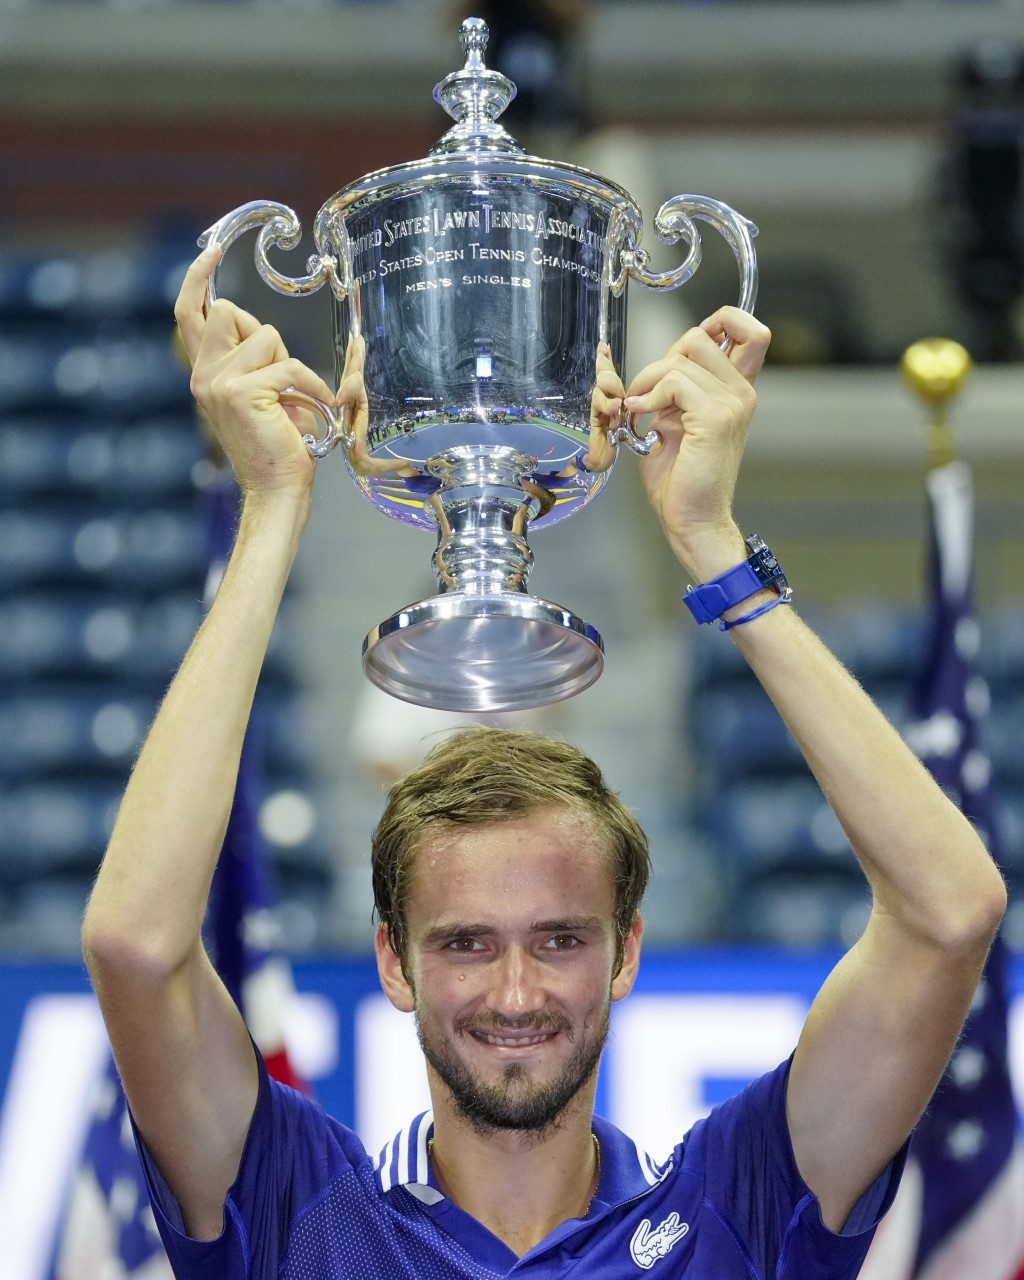 Daniil Medvedev, of Russia, holds up the championship trophy after defeating Novak Djokovic, of Serbia, in the men's singles final of the US Open tenn...